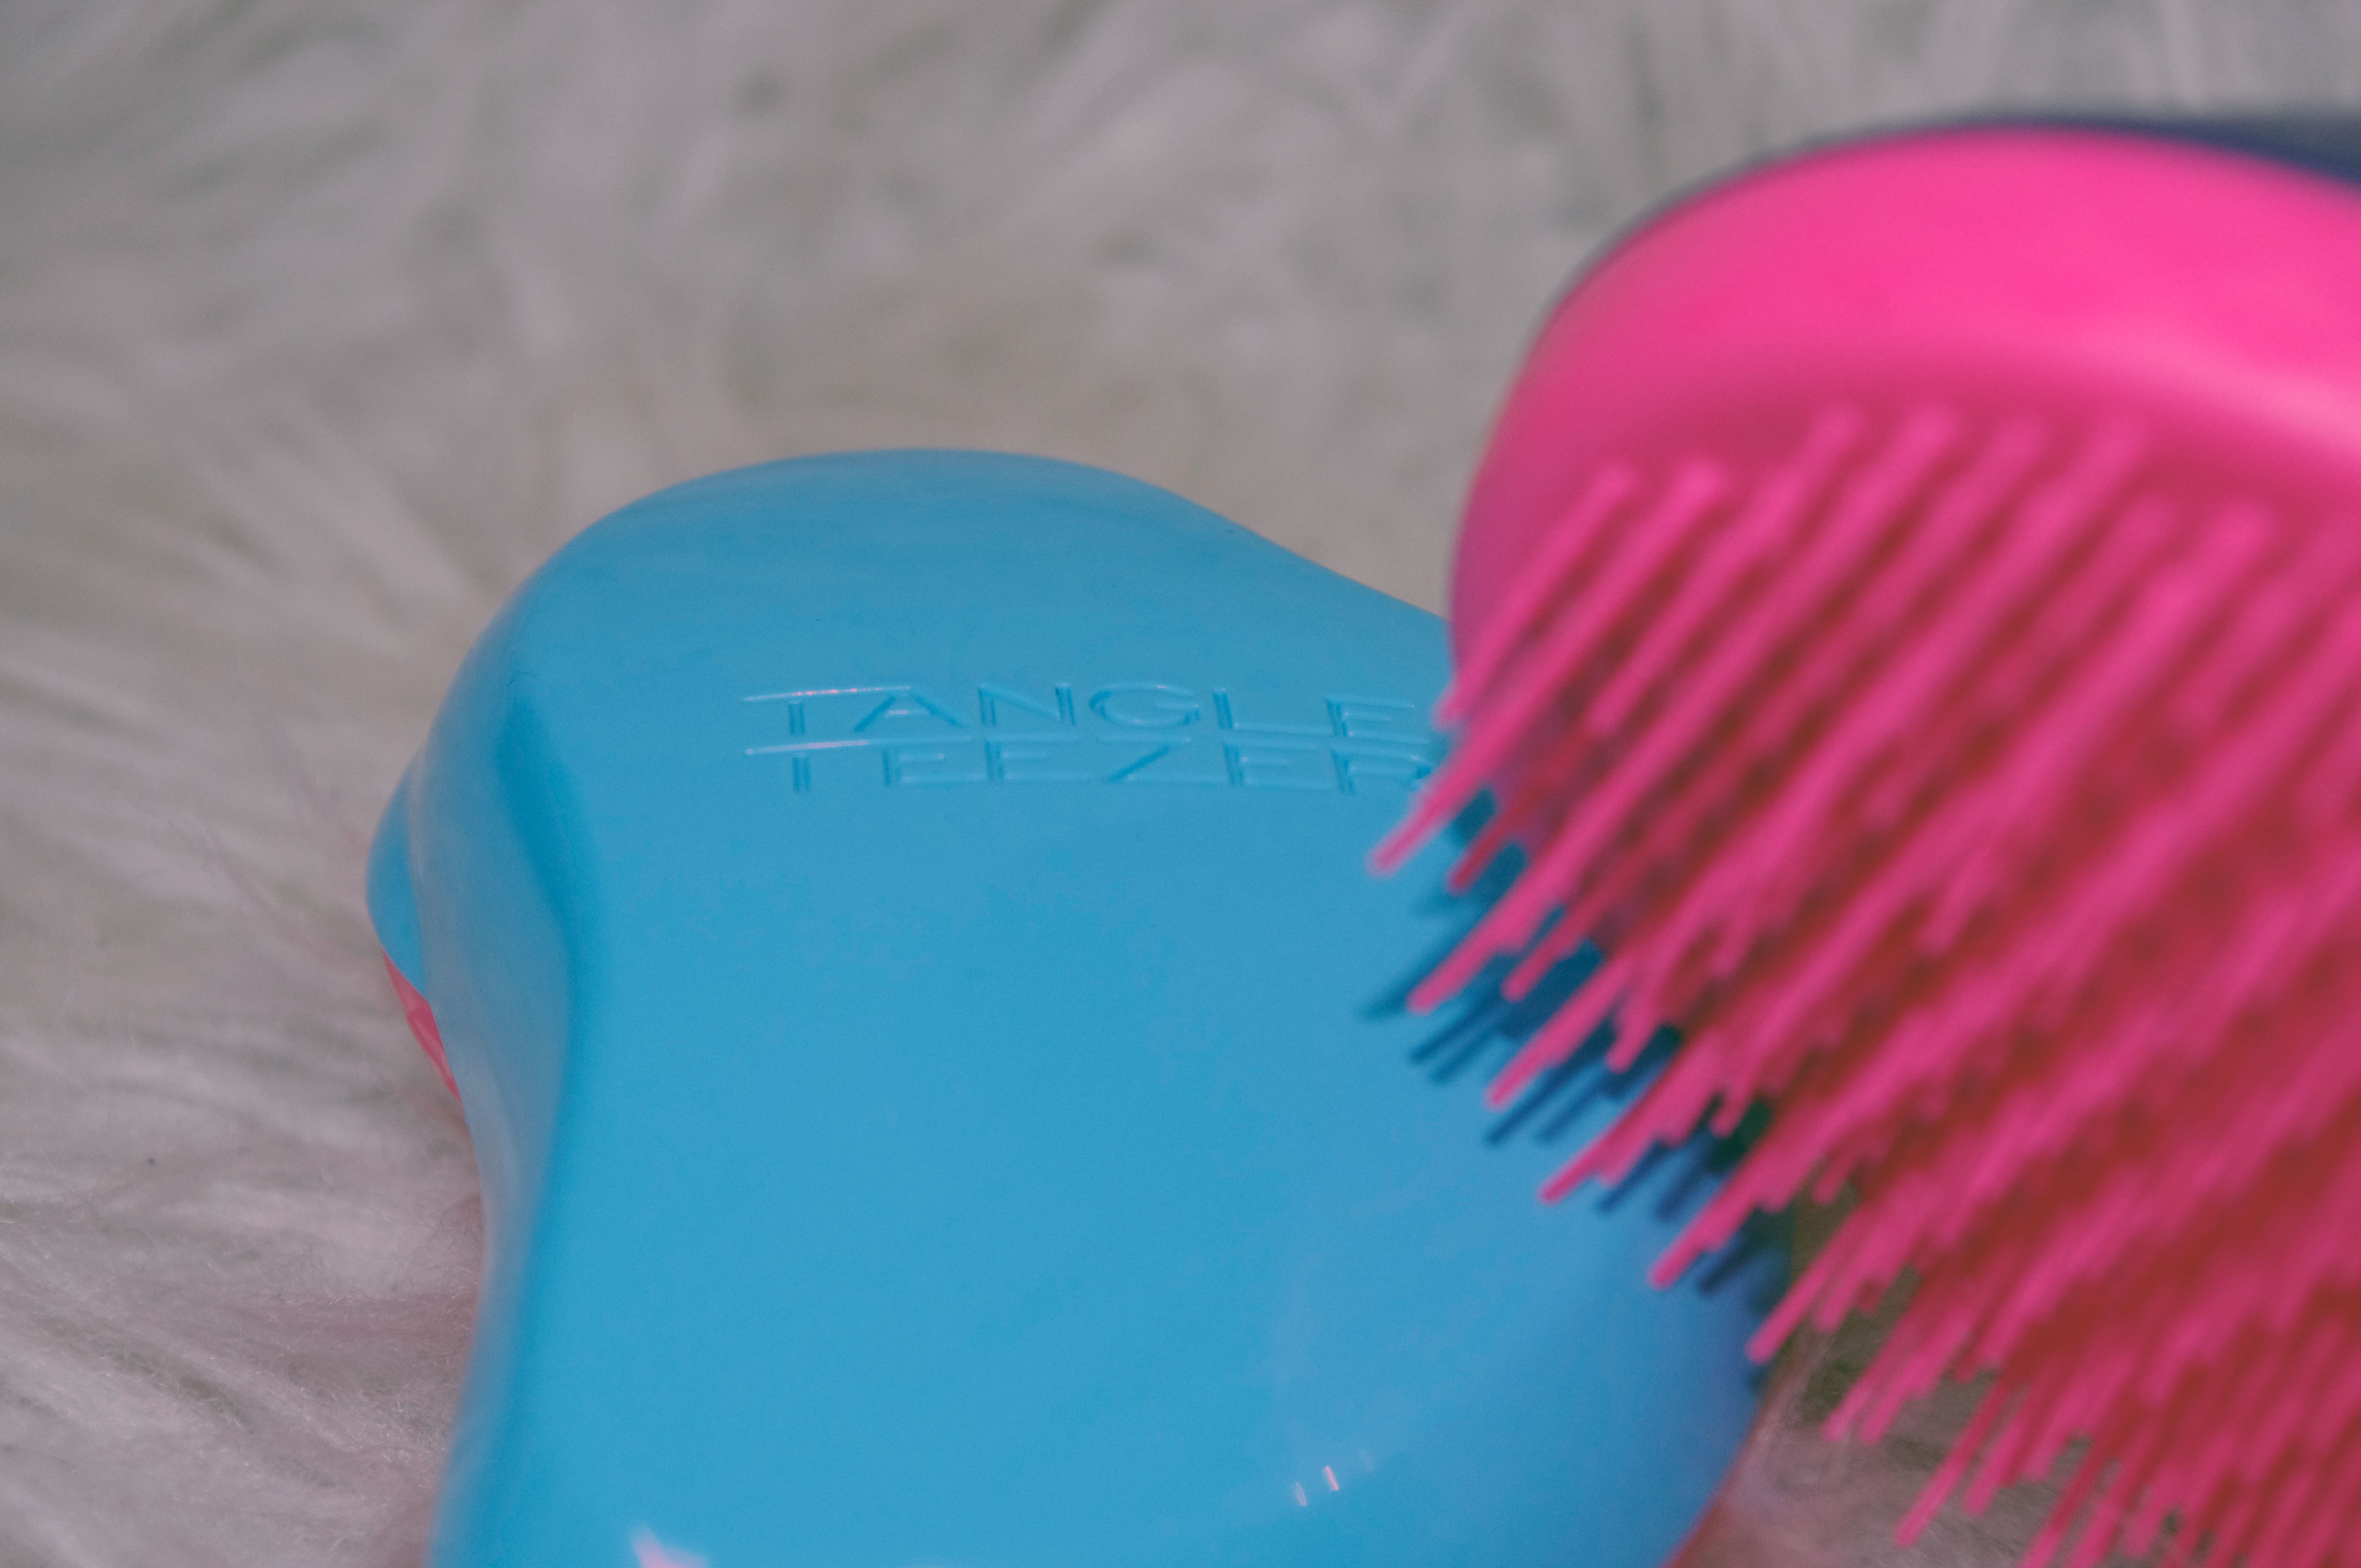 tangle teezer original blau und pink